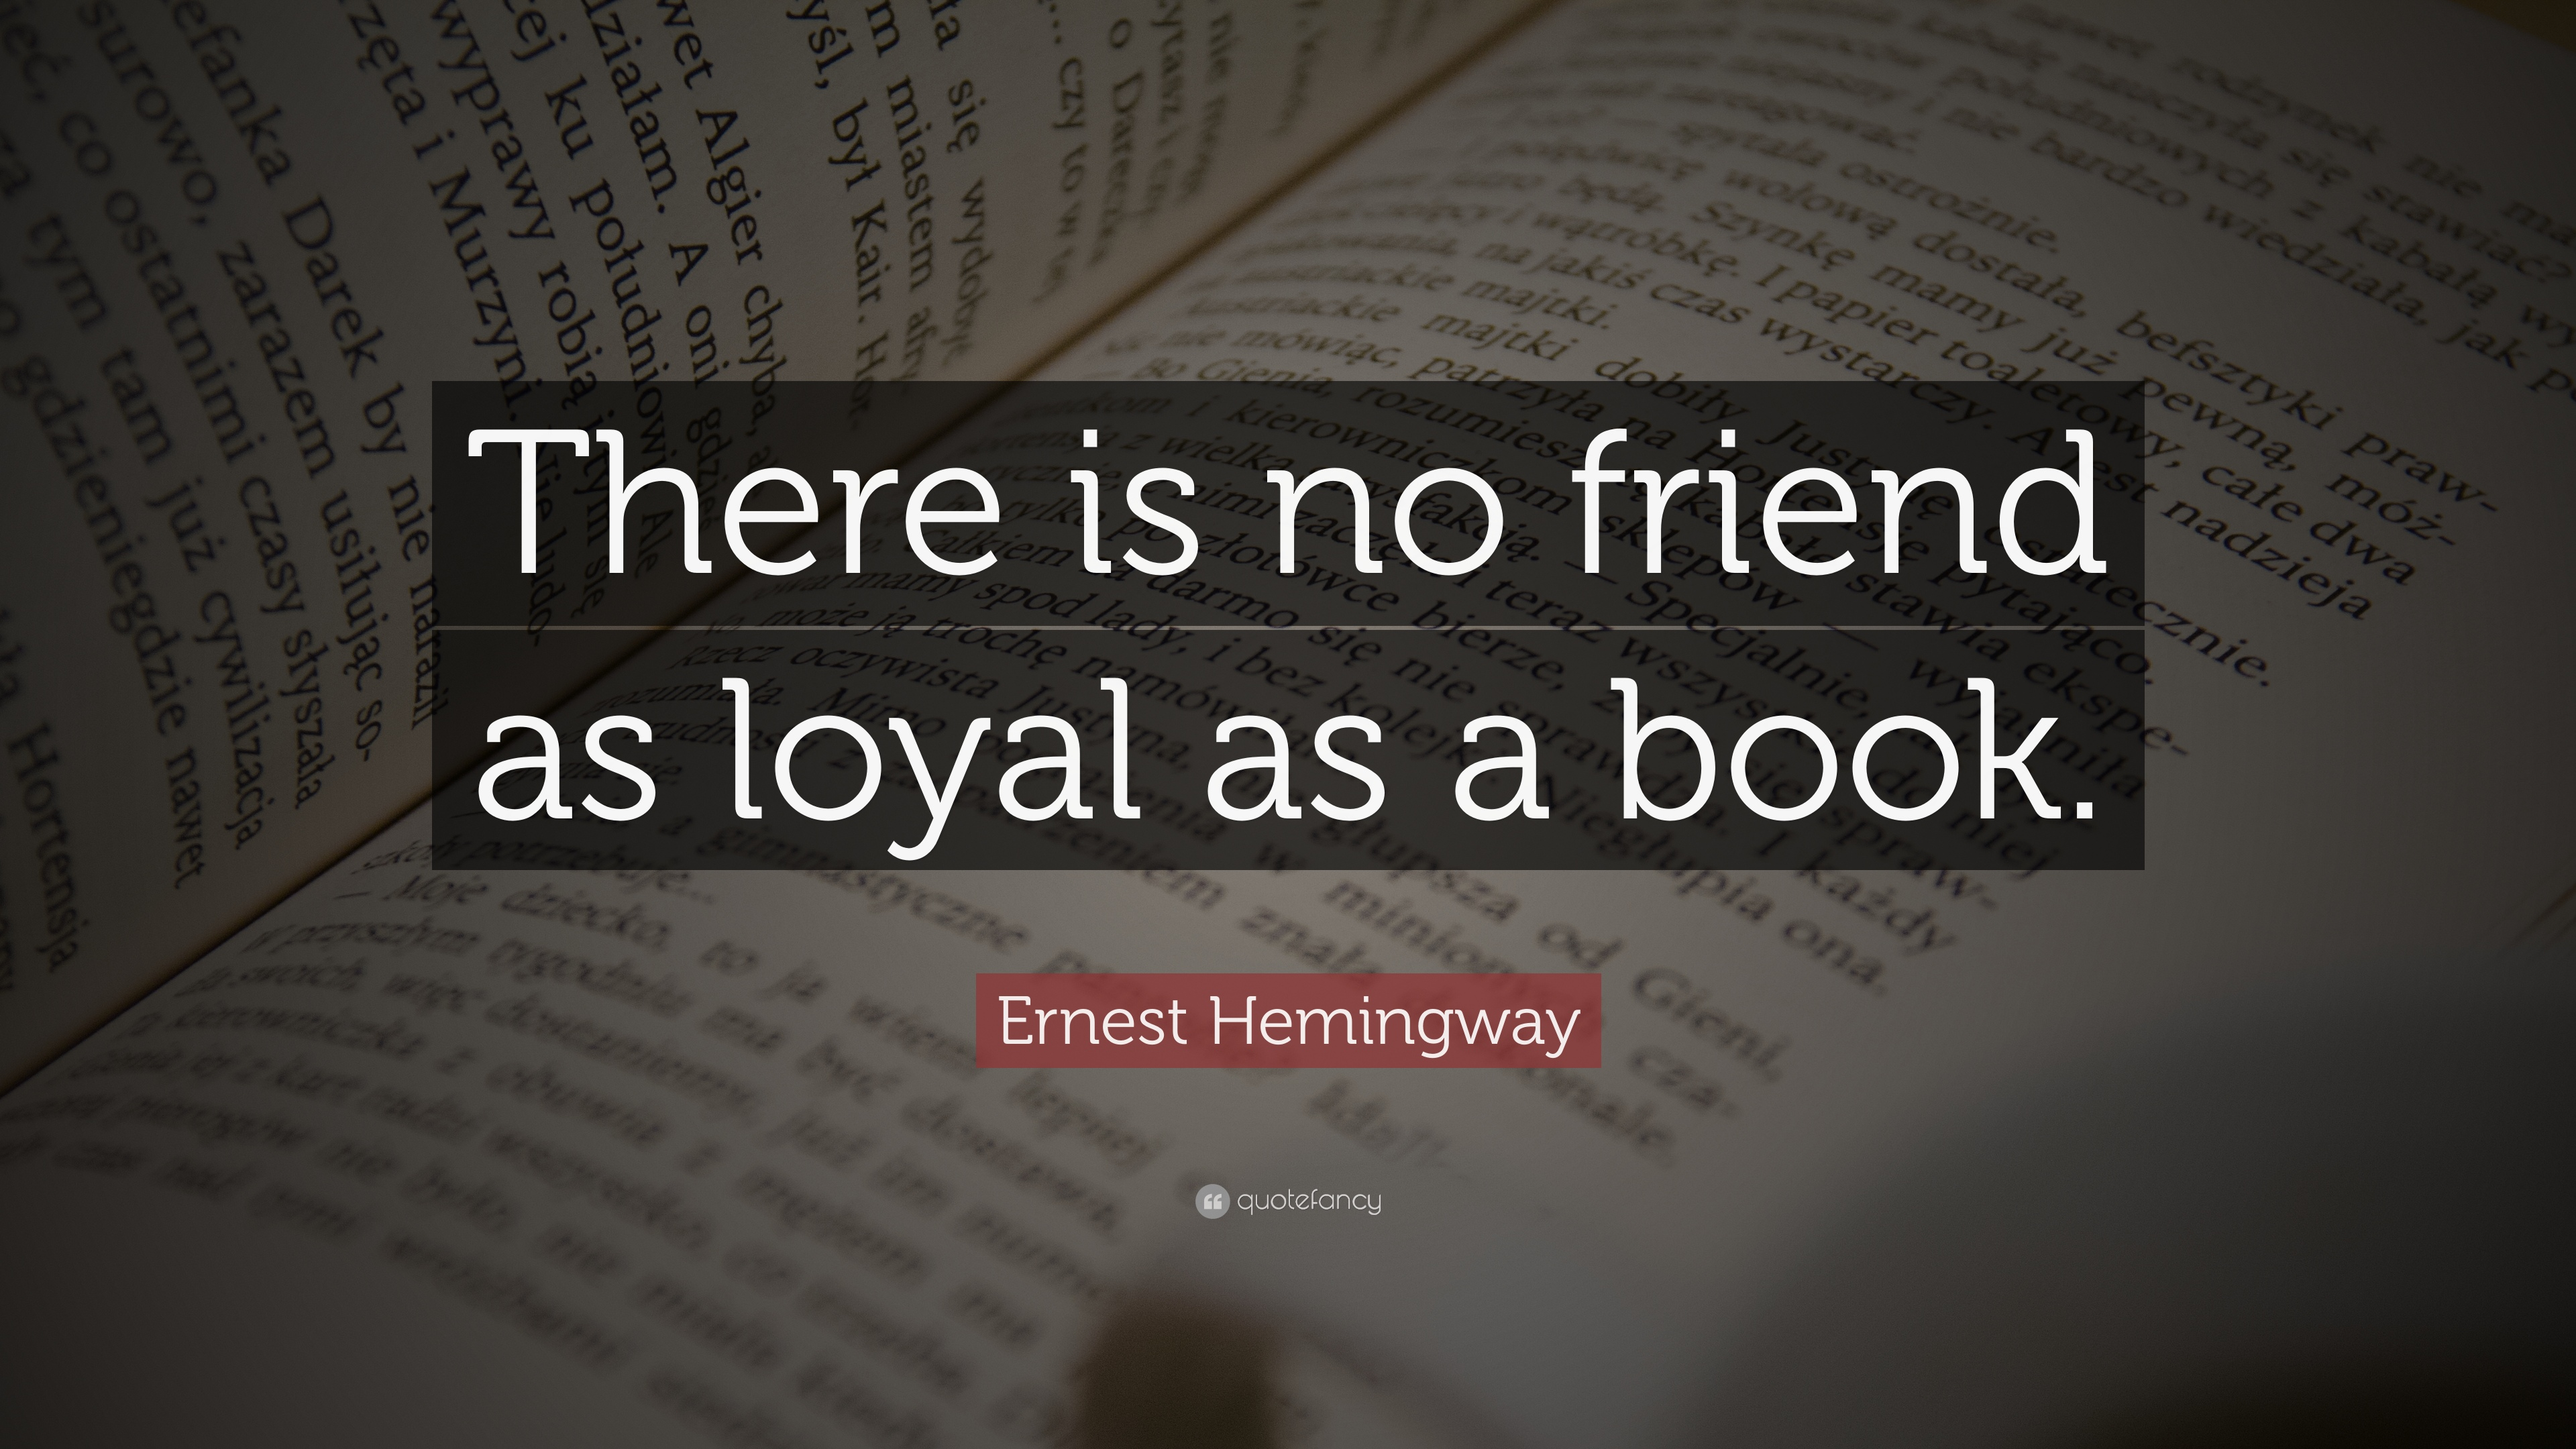 Booknerd images 4056 Ernest Hemingway Quote There is no friend as ...